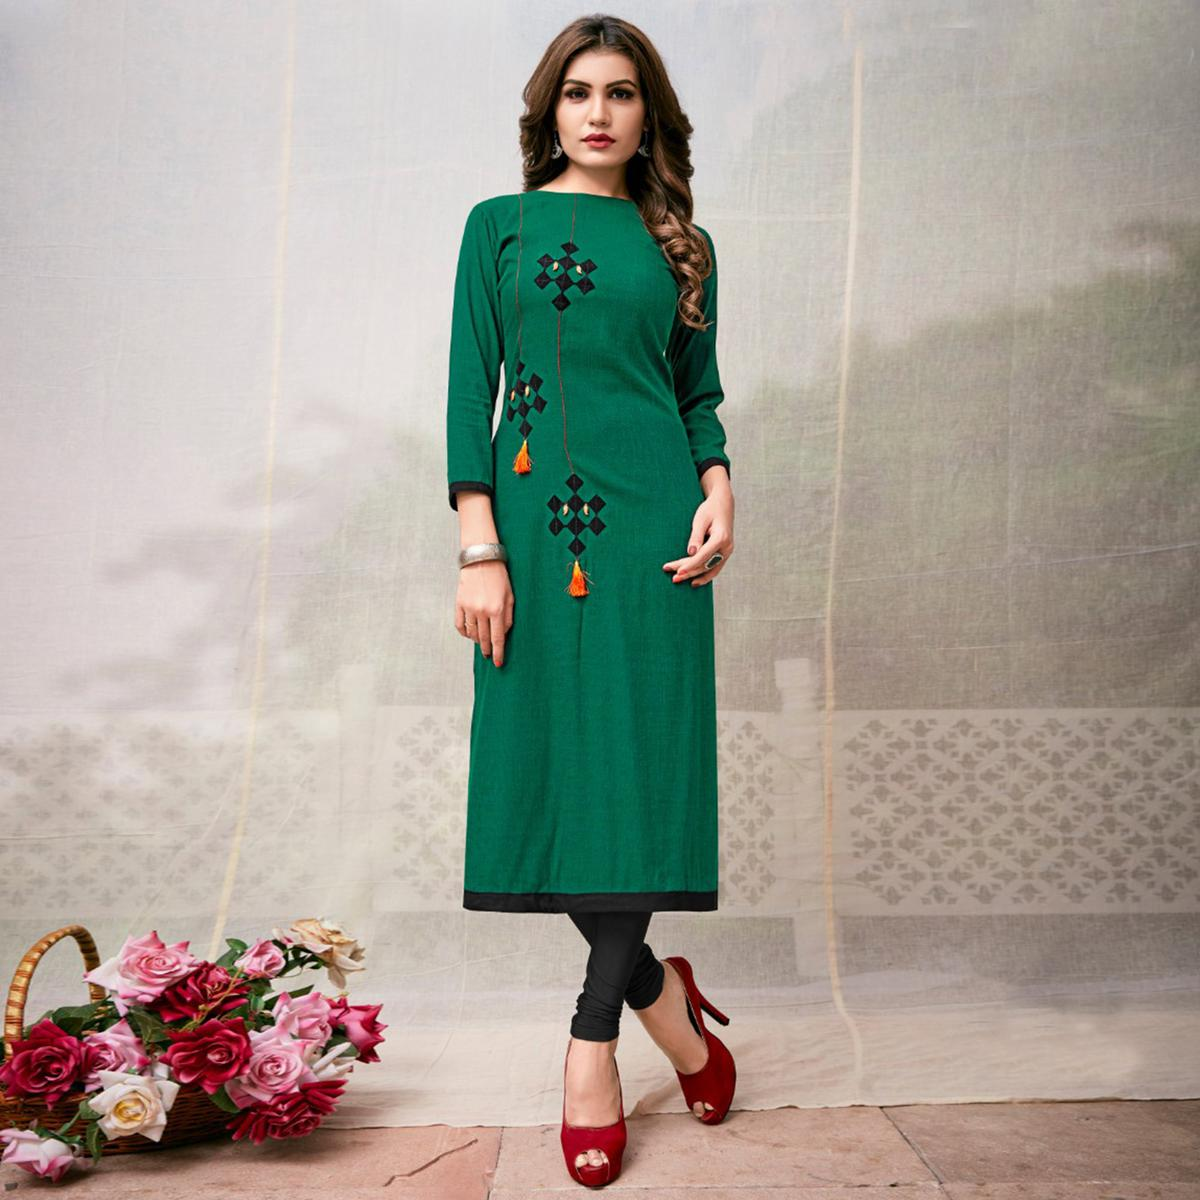 Delightful Green Colored Casual Embroidered Rayon Kurti